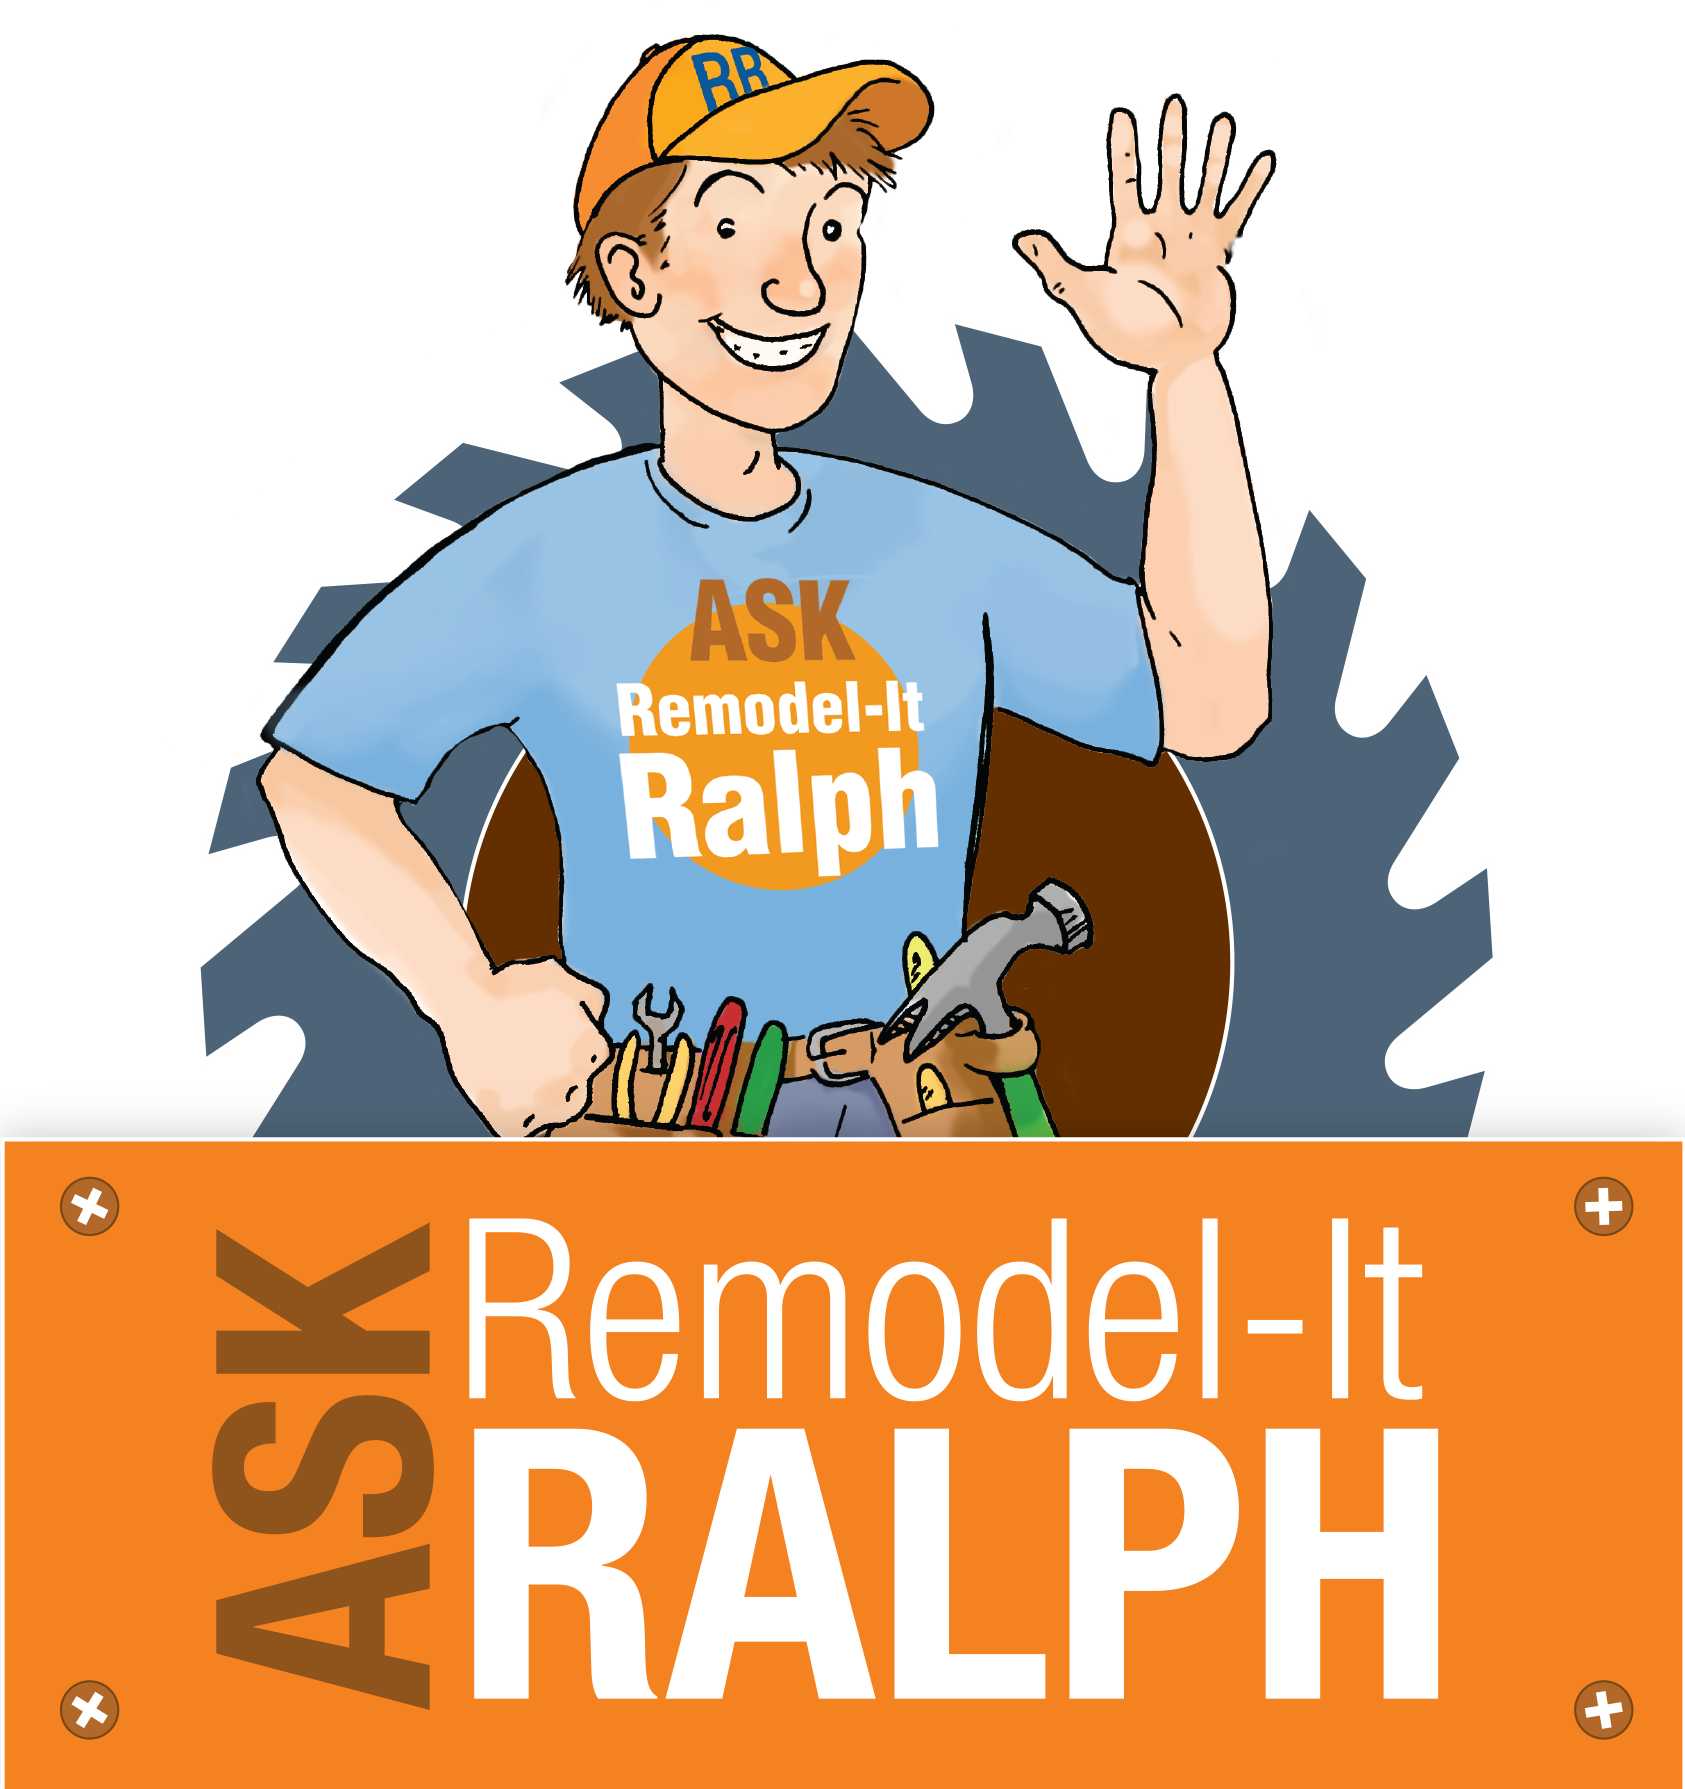 Ask Remodel-it Ralph - The Basic Companies - Ask an Expert